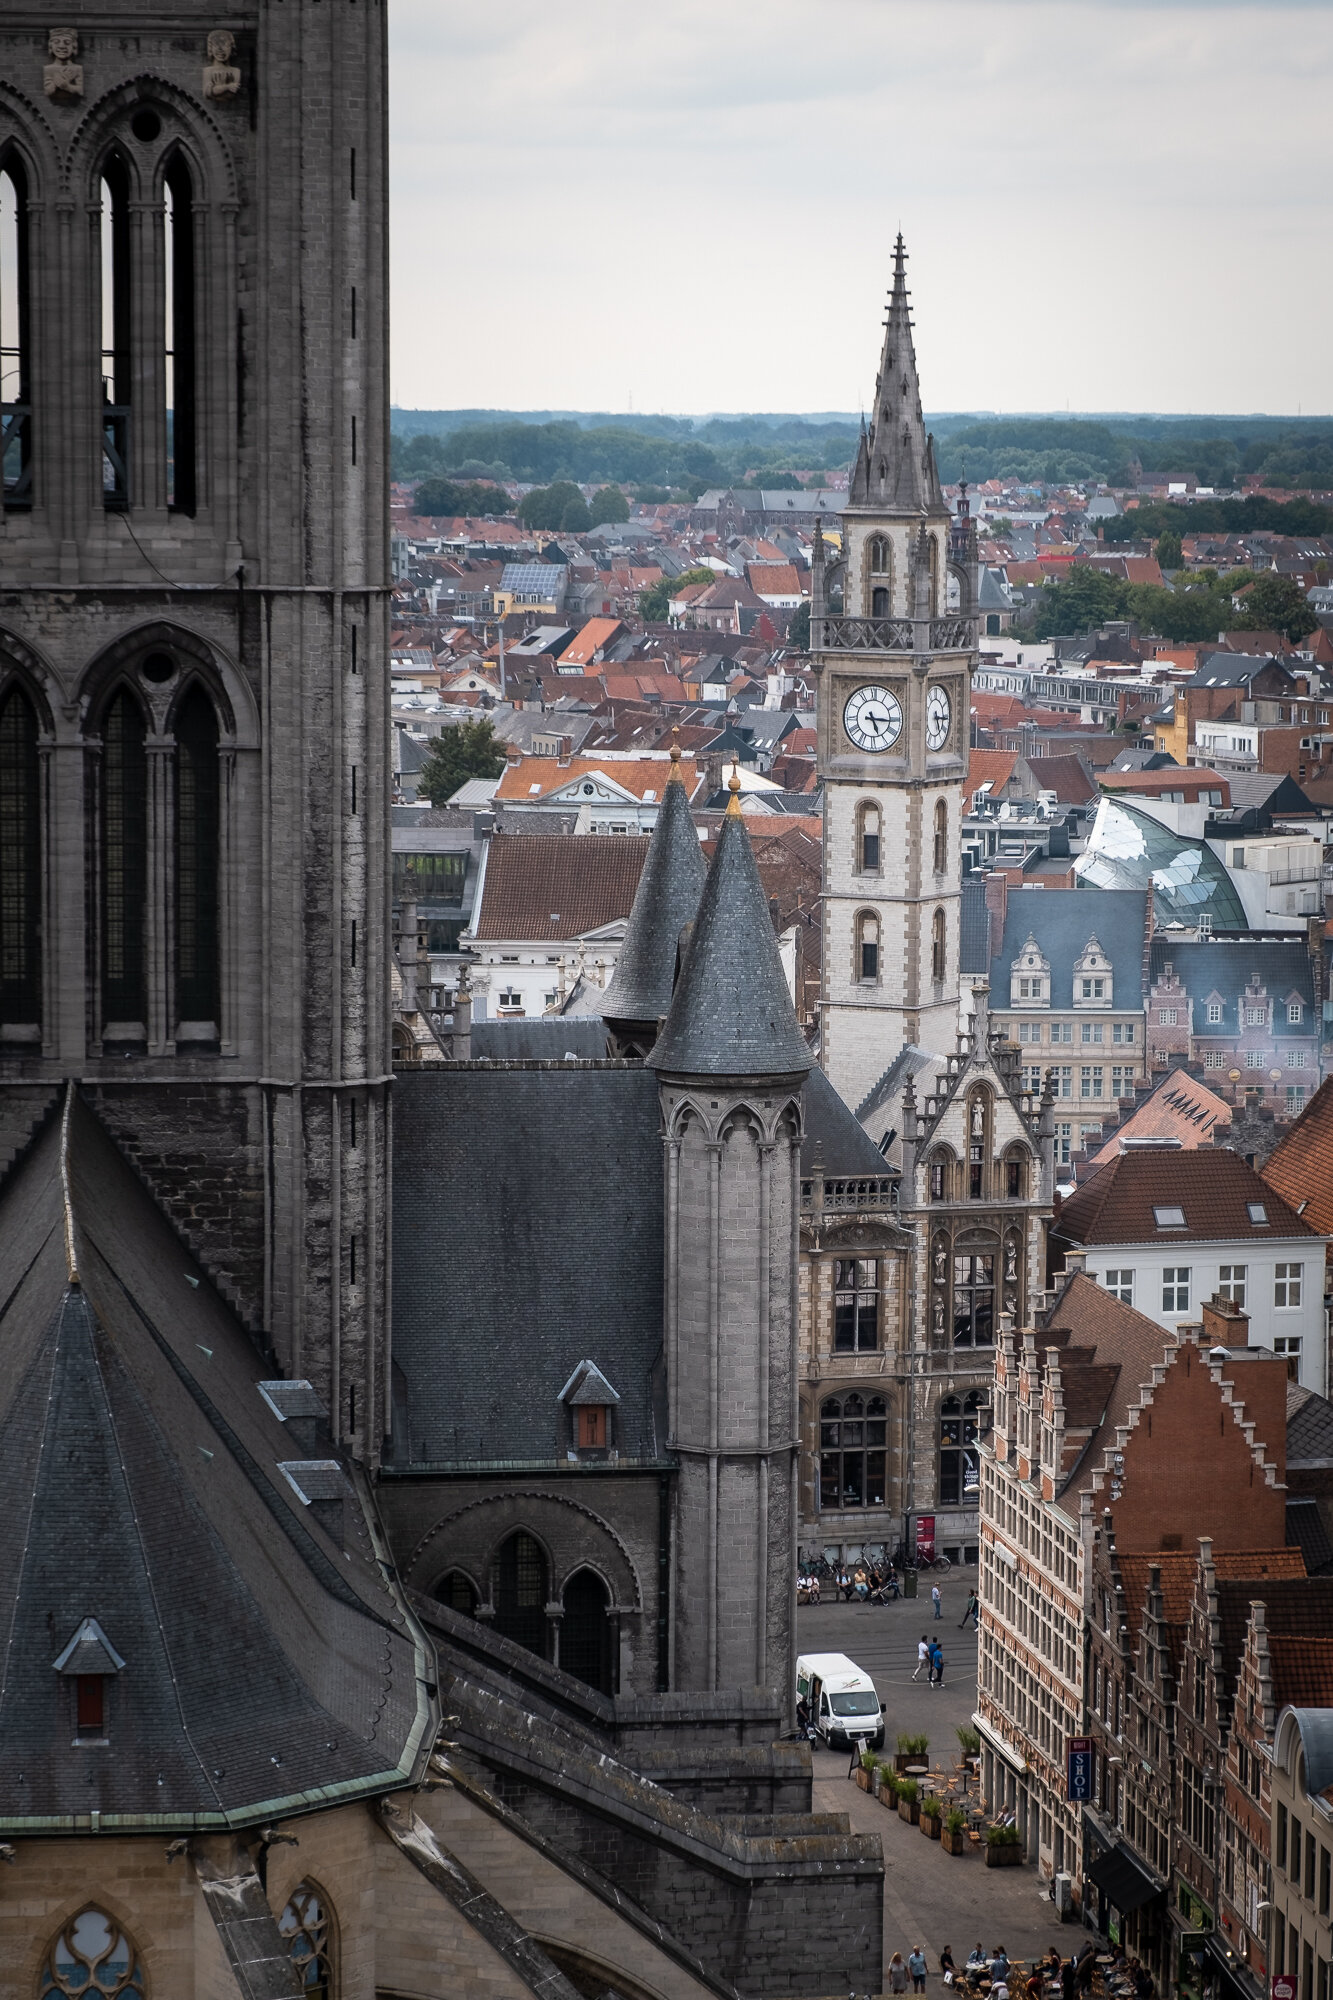 St. Nicholas' Church taken from the Belfry of Ghent